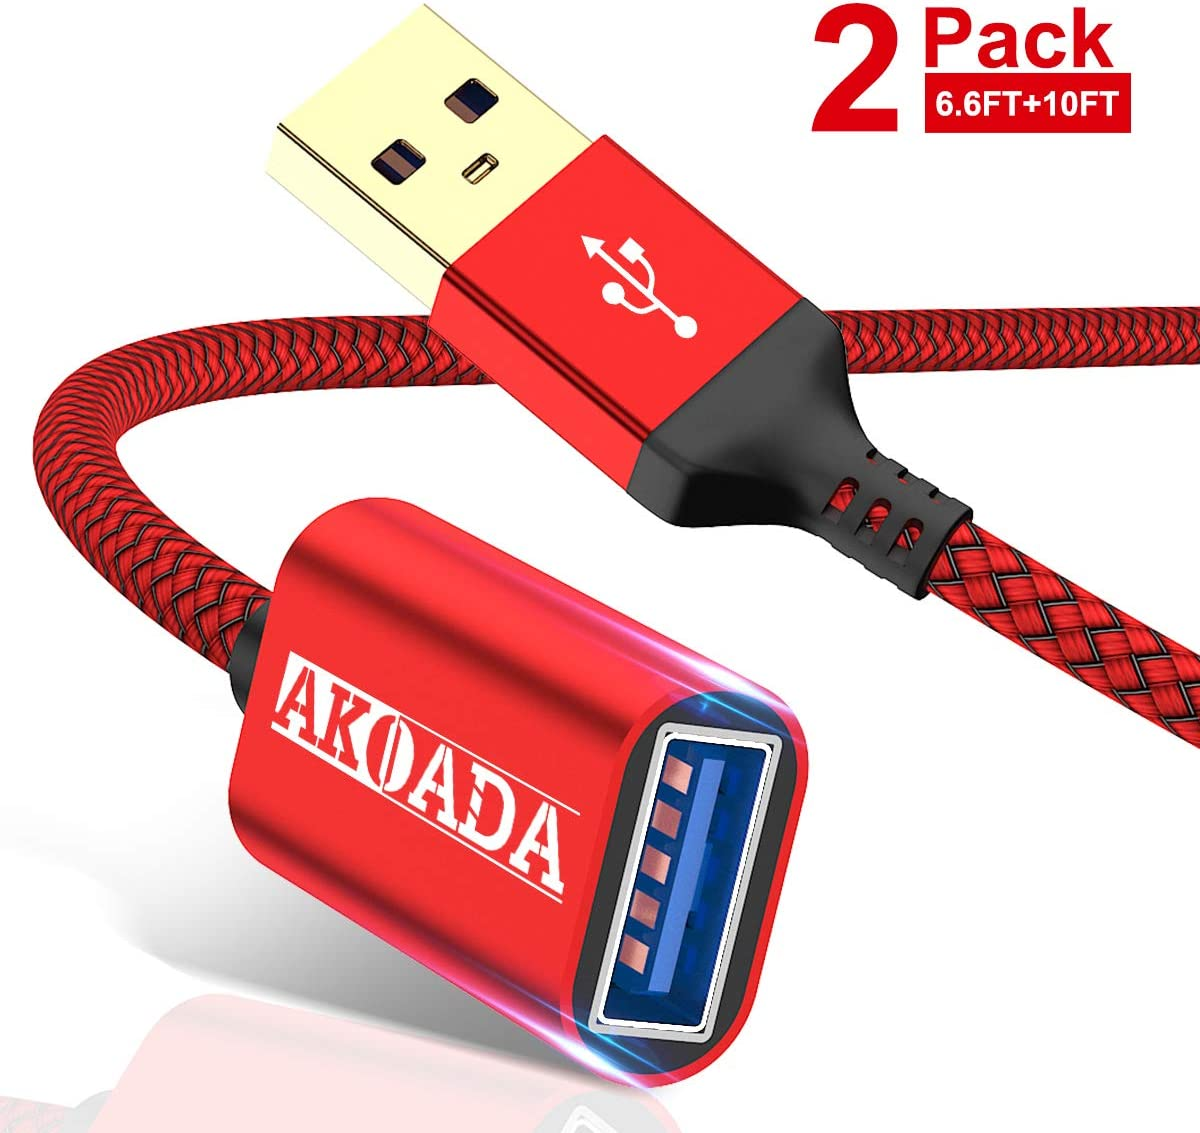 AkoaDa USB Extension Cable 3.0,Type A Male to USB A Female Extender Cord [2pack 6.6ft+10ft] 5Gbps Data Transfer Compatible with Keyboard,USB Flash Drive,Playstation,Mouse,Hard Drive and More(Grey): Computers & Accessories